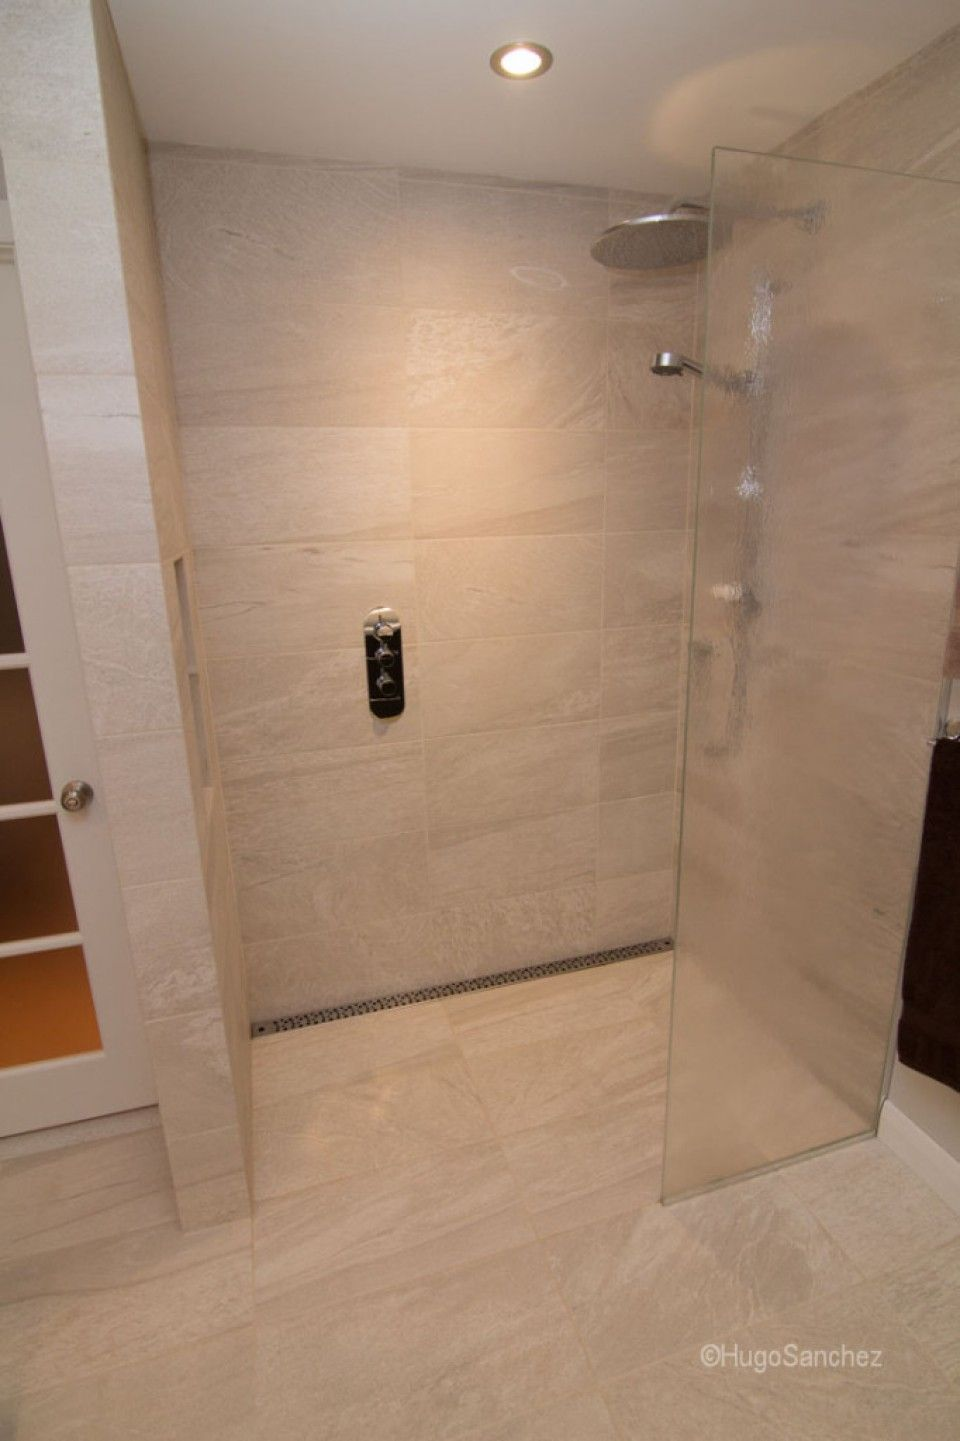 Curbless shower designs c ramiques hugo sanchez bathrooms with tile showers pinterest Bathroom tile showers